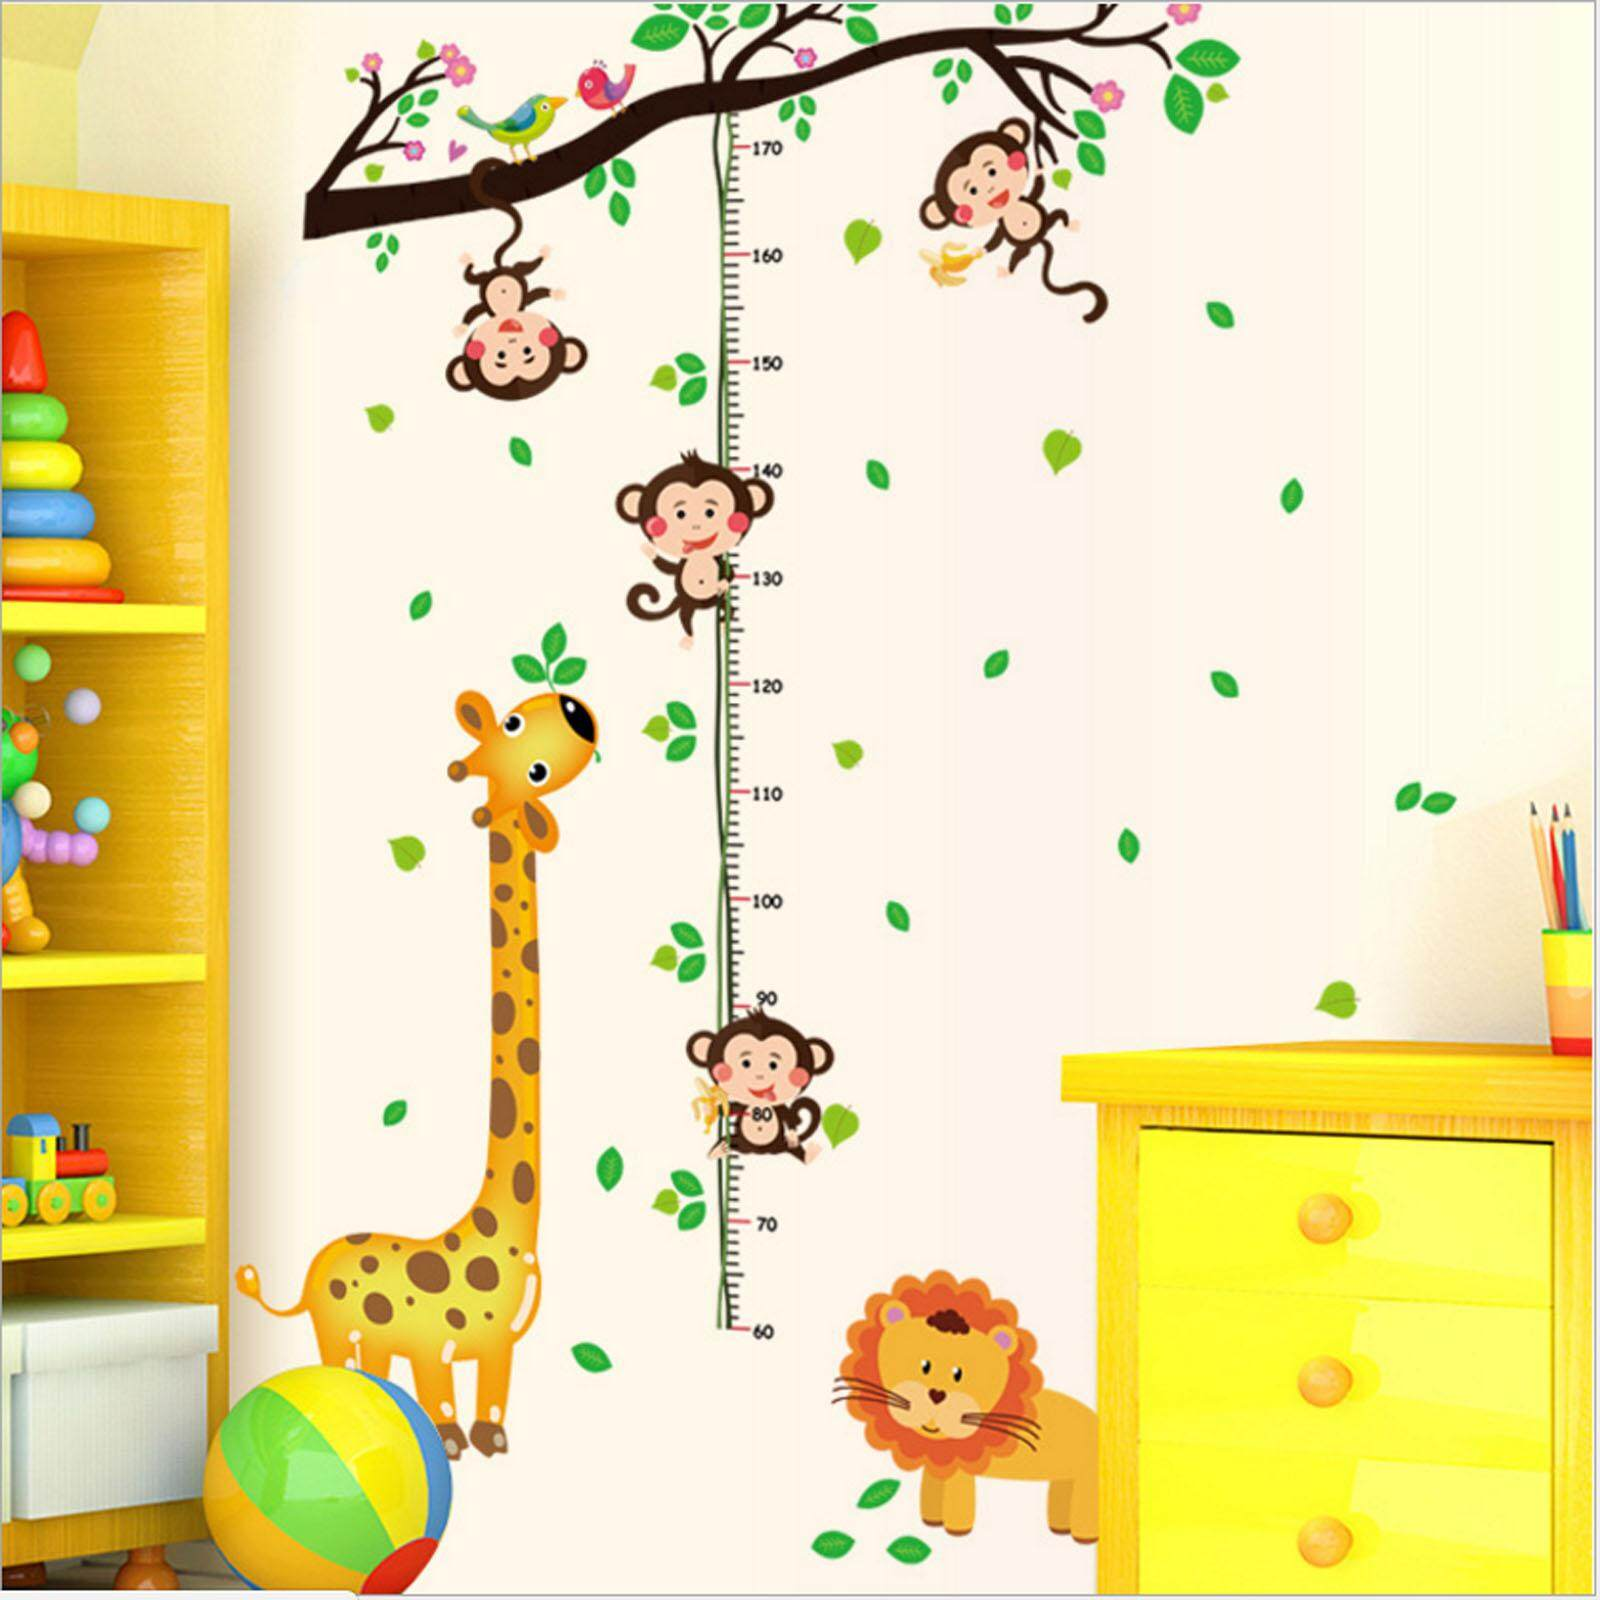 Home Wall Stickers Decals Buy At Wallpaper Sticker 42 Nava Perfect Memory Children Cartoon Growing Up Height Recorder